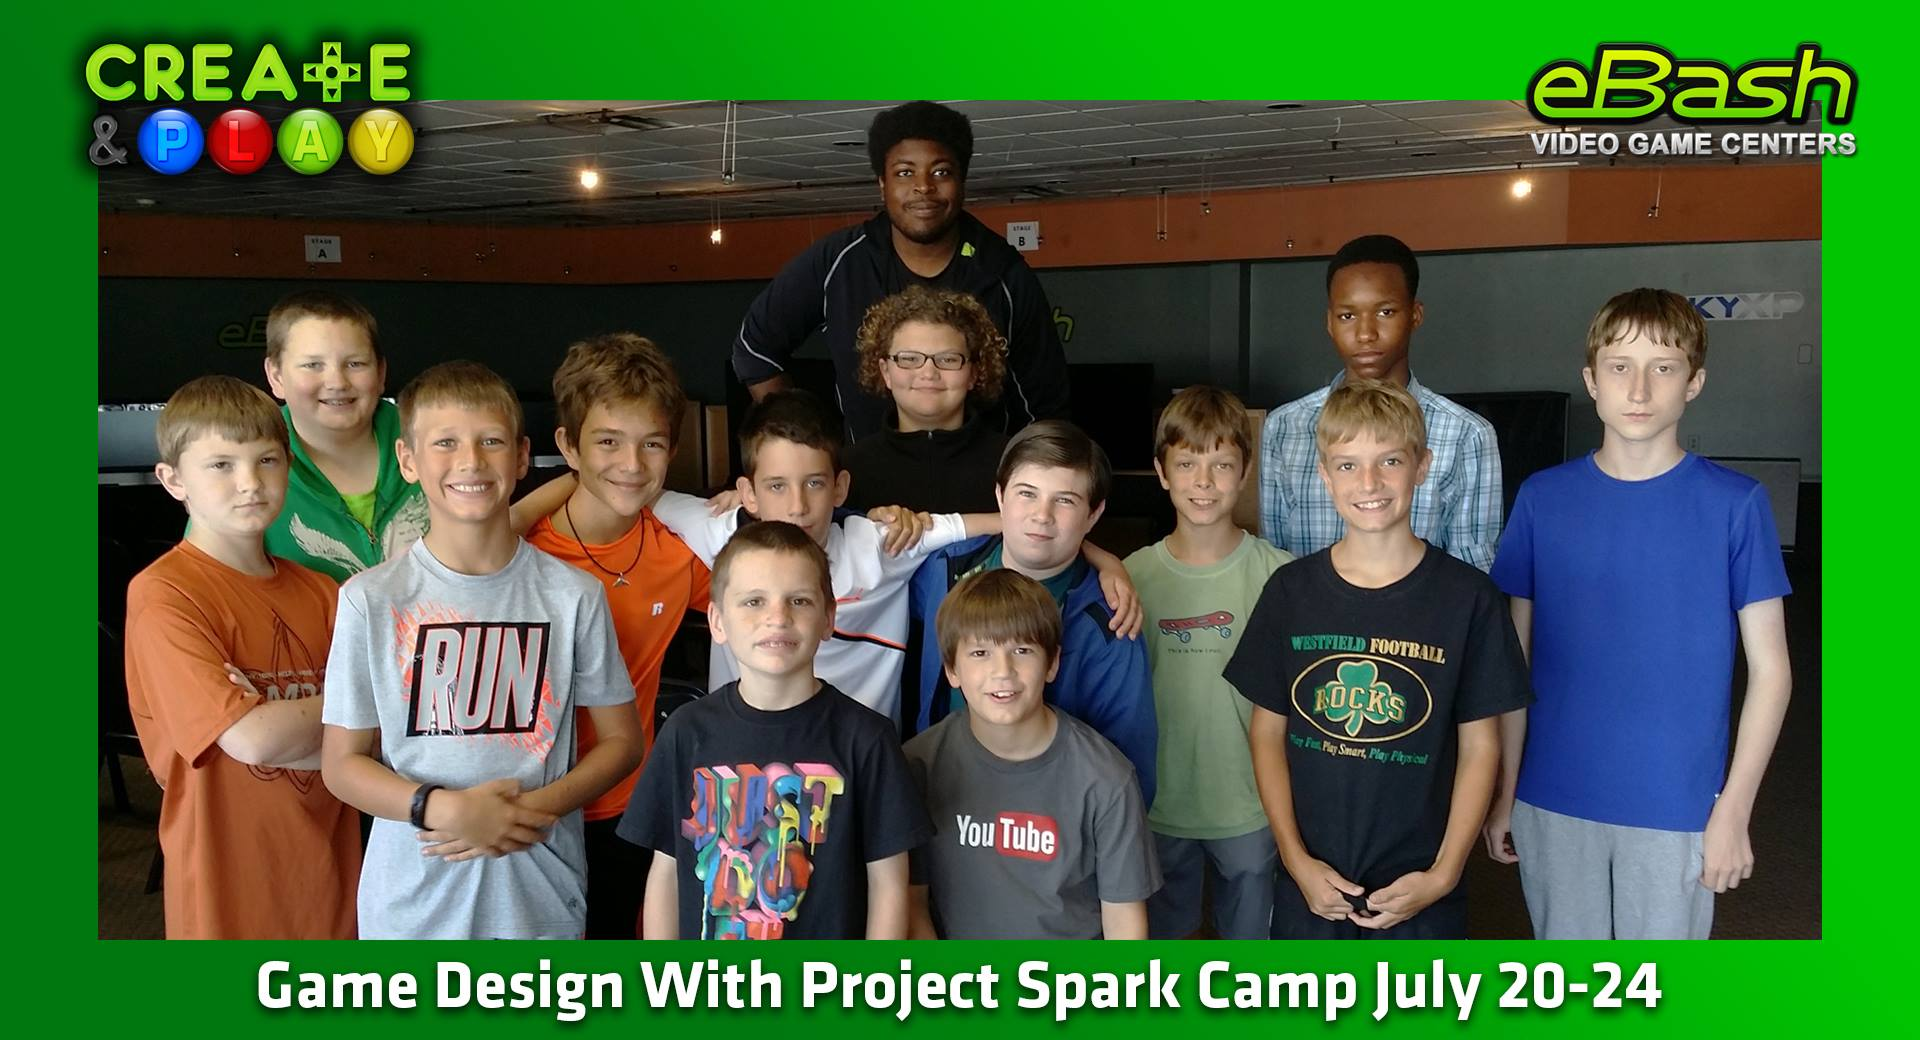 Game Design With Project Spark Camp July 20-24